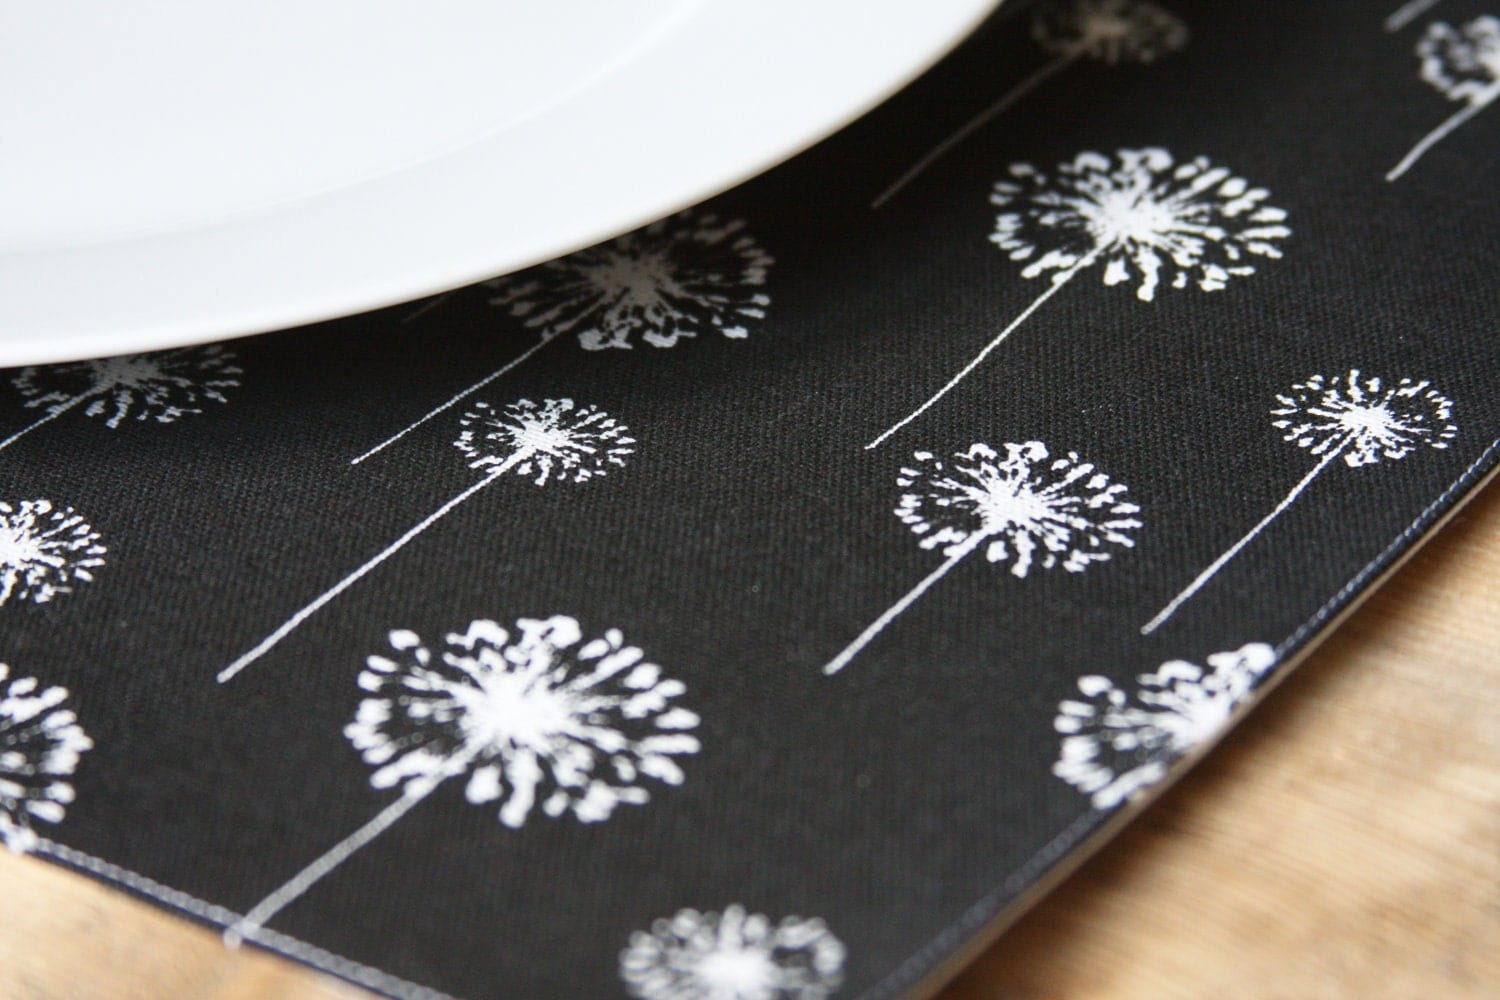 Placemats - White Dandelions on Black - Set of 2